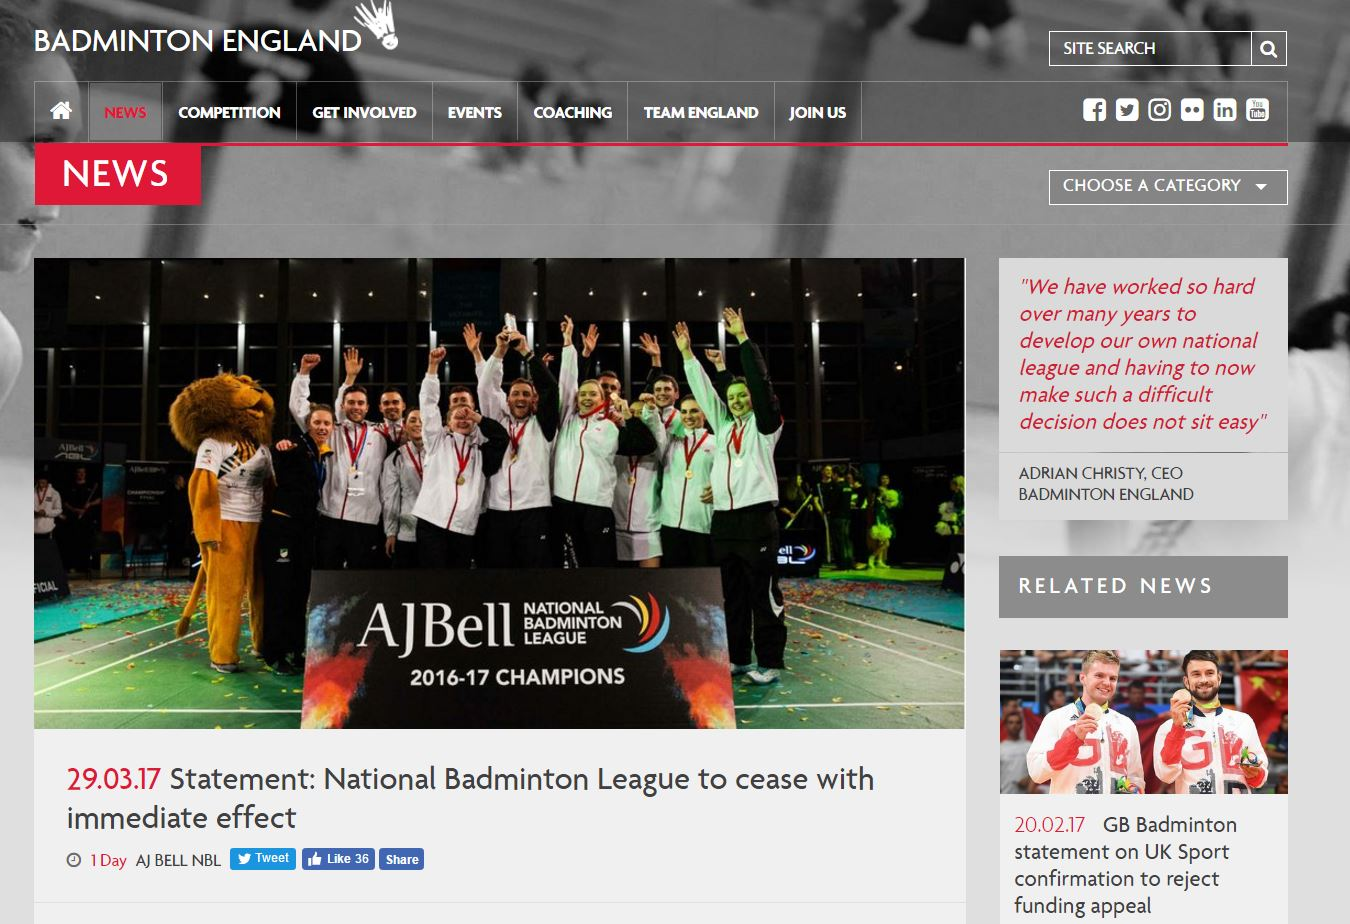 Badminton England announced today that its National Badminton League will not be played next year, in what seems to be a consequenceof the funds being cut from UK Sport. The […]